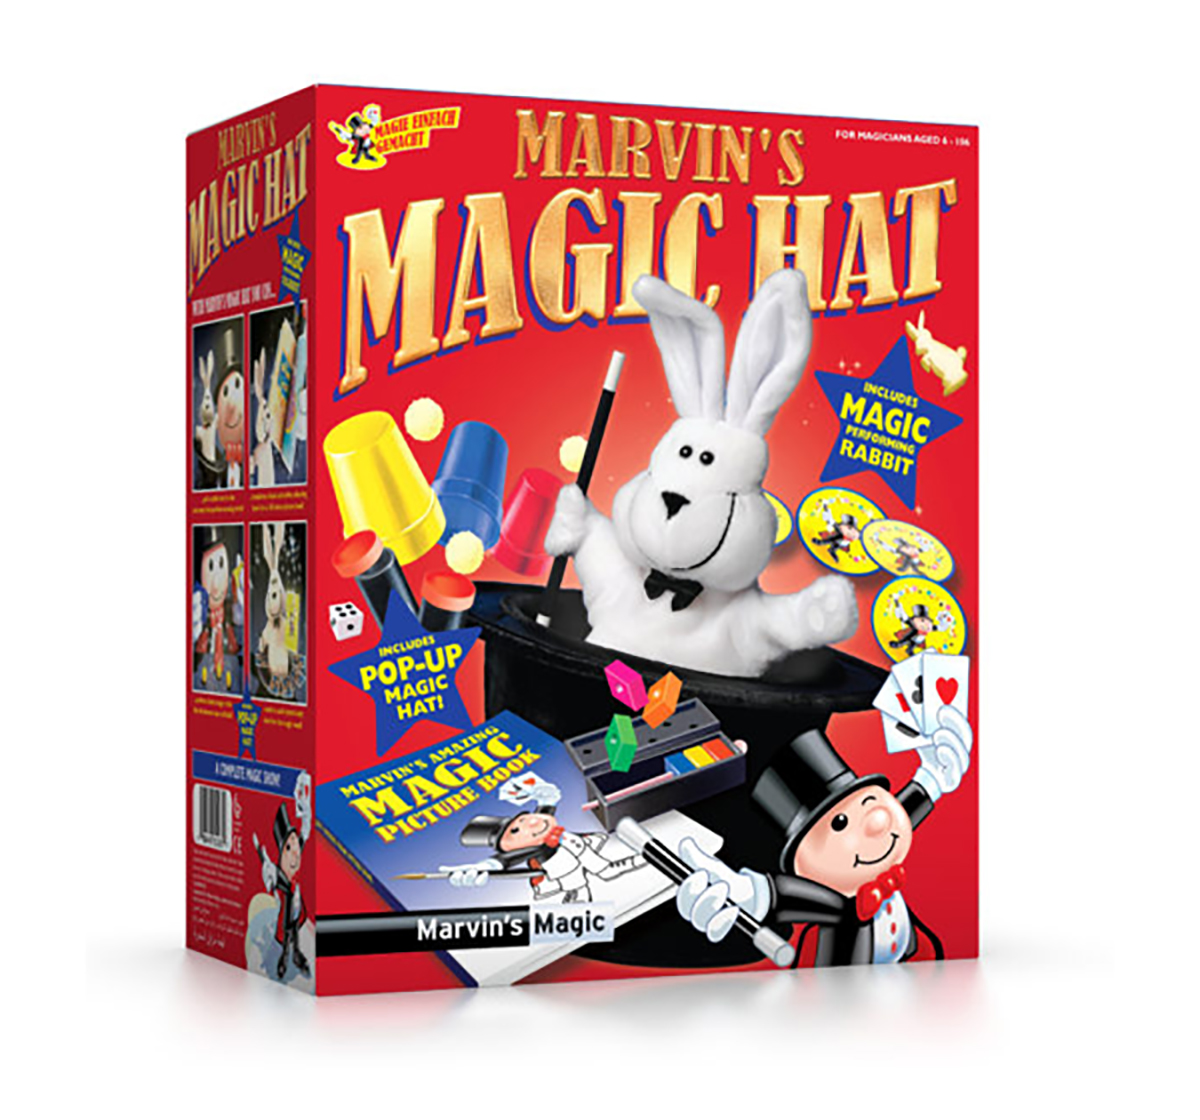 Marvin's Magic | Marvin'S Magic New Magic Hat Impulse Toys for Kids age 6Y+